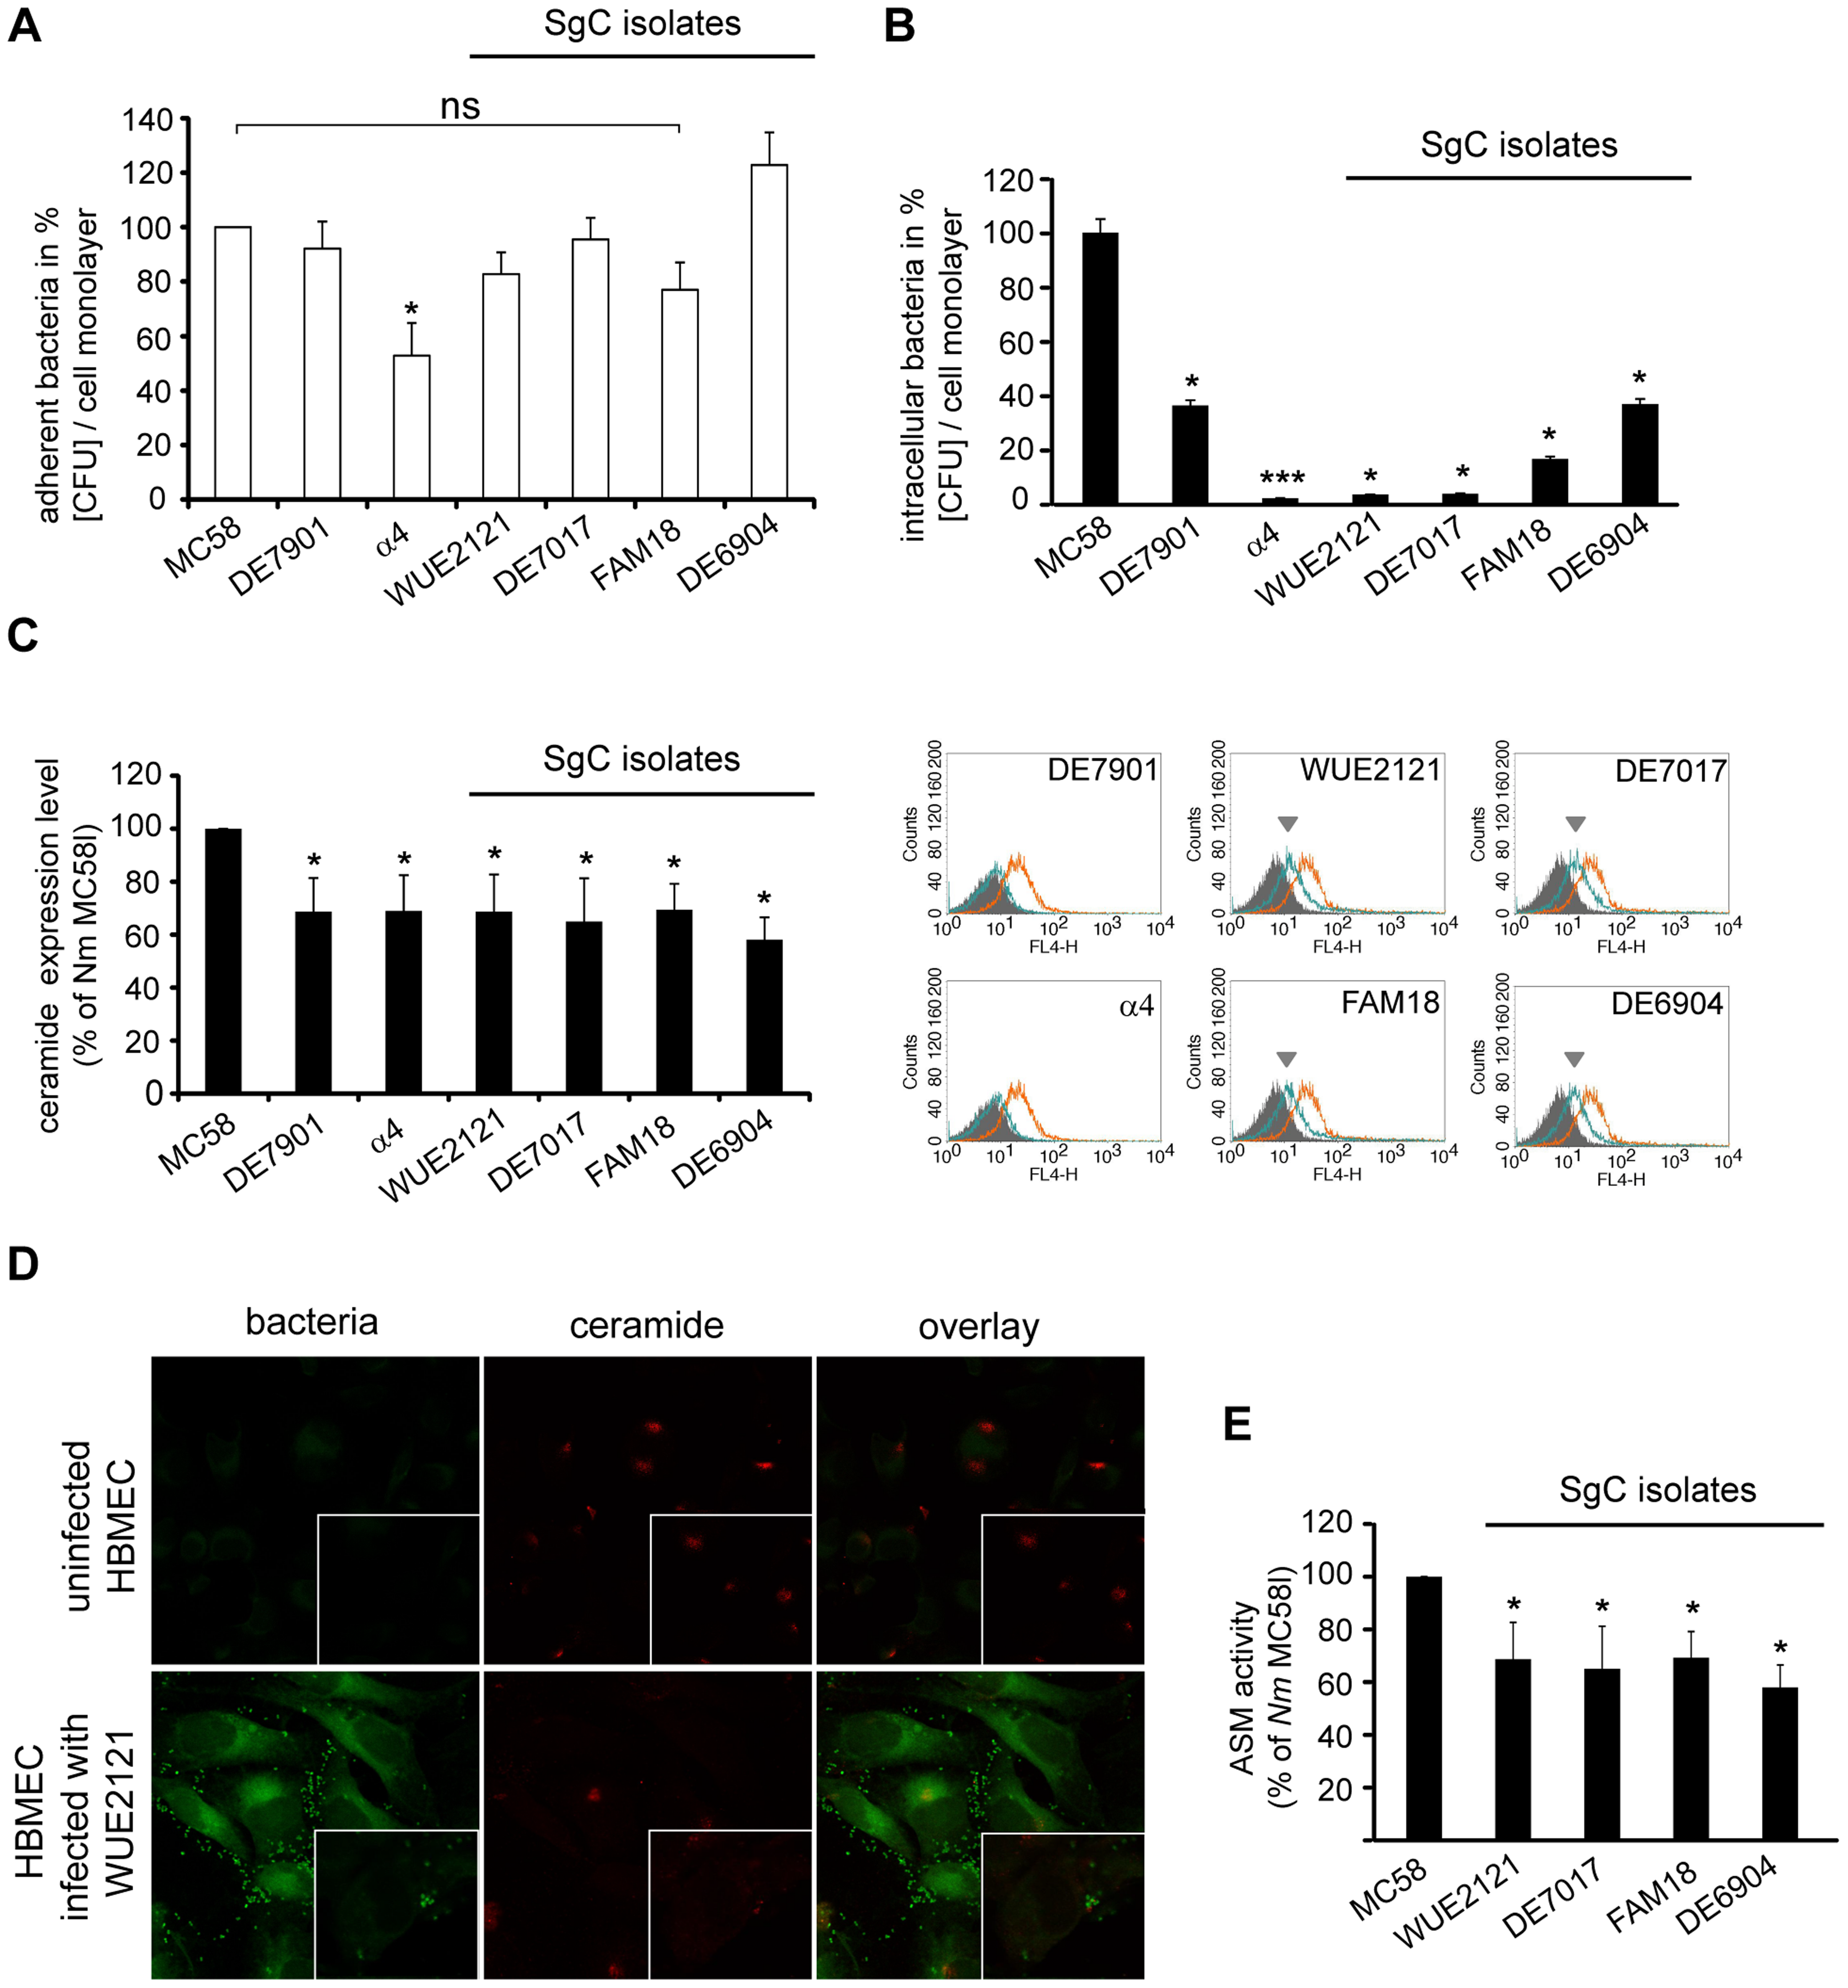 MenC isolates are less efficient at activating ASM and membrane ceramide release on HBMEC.